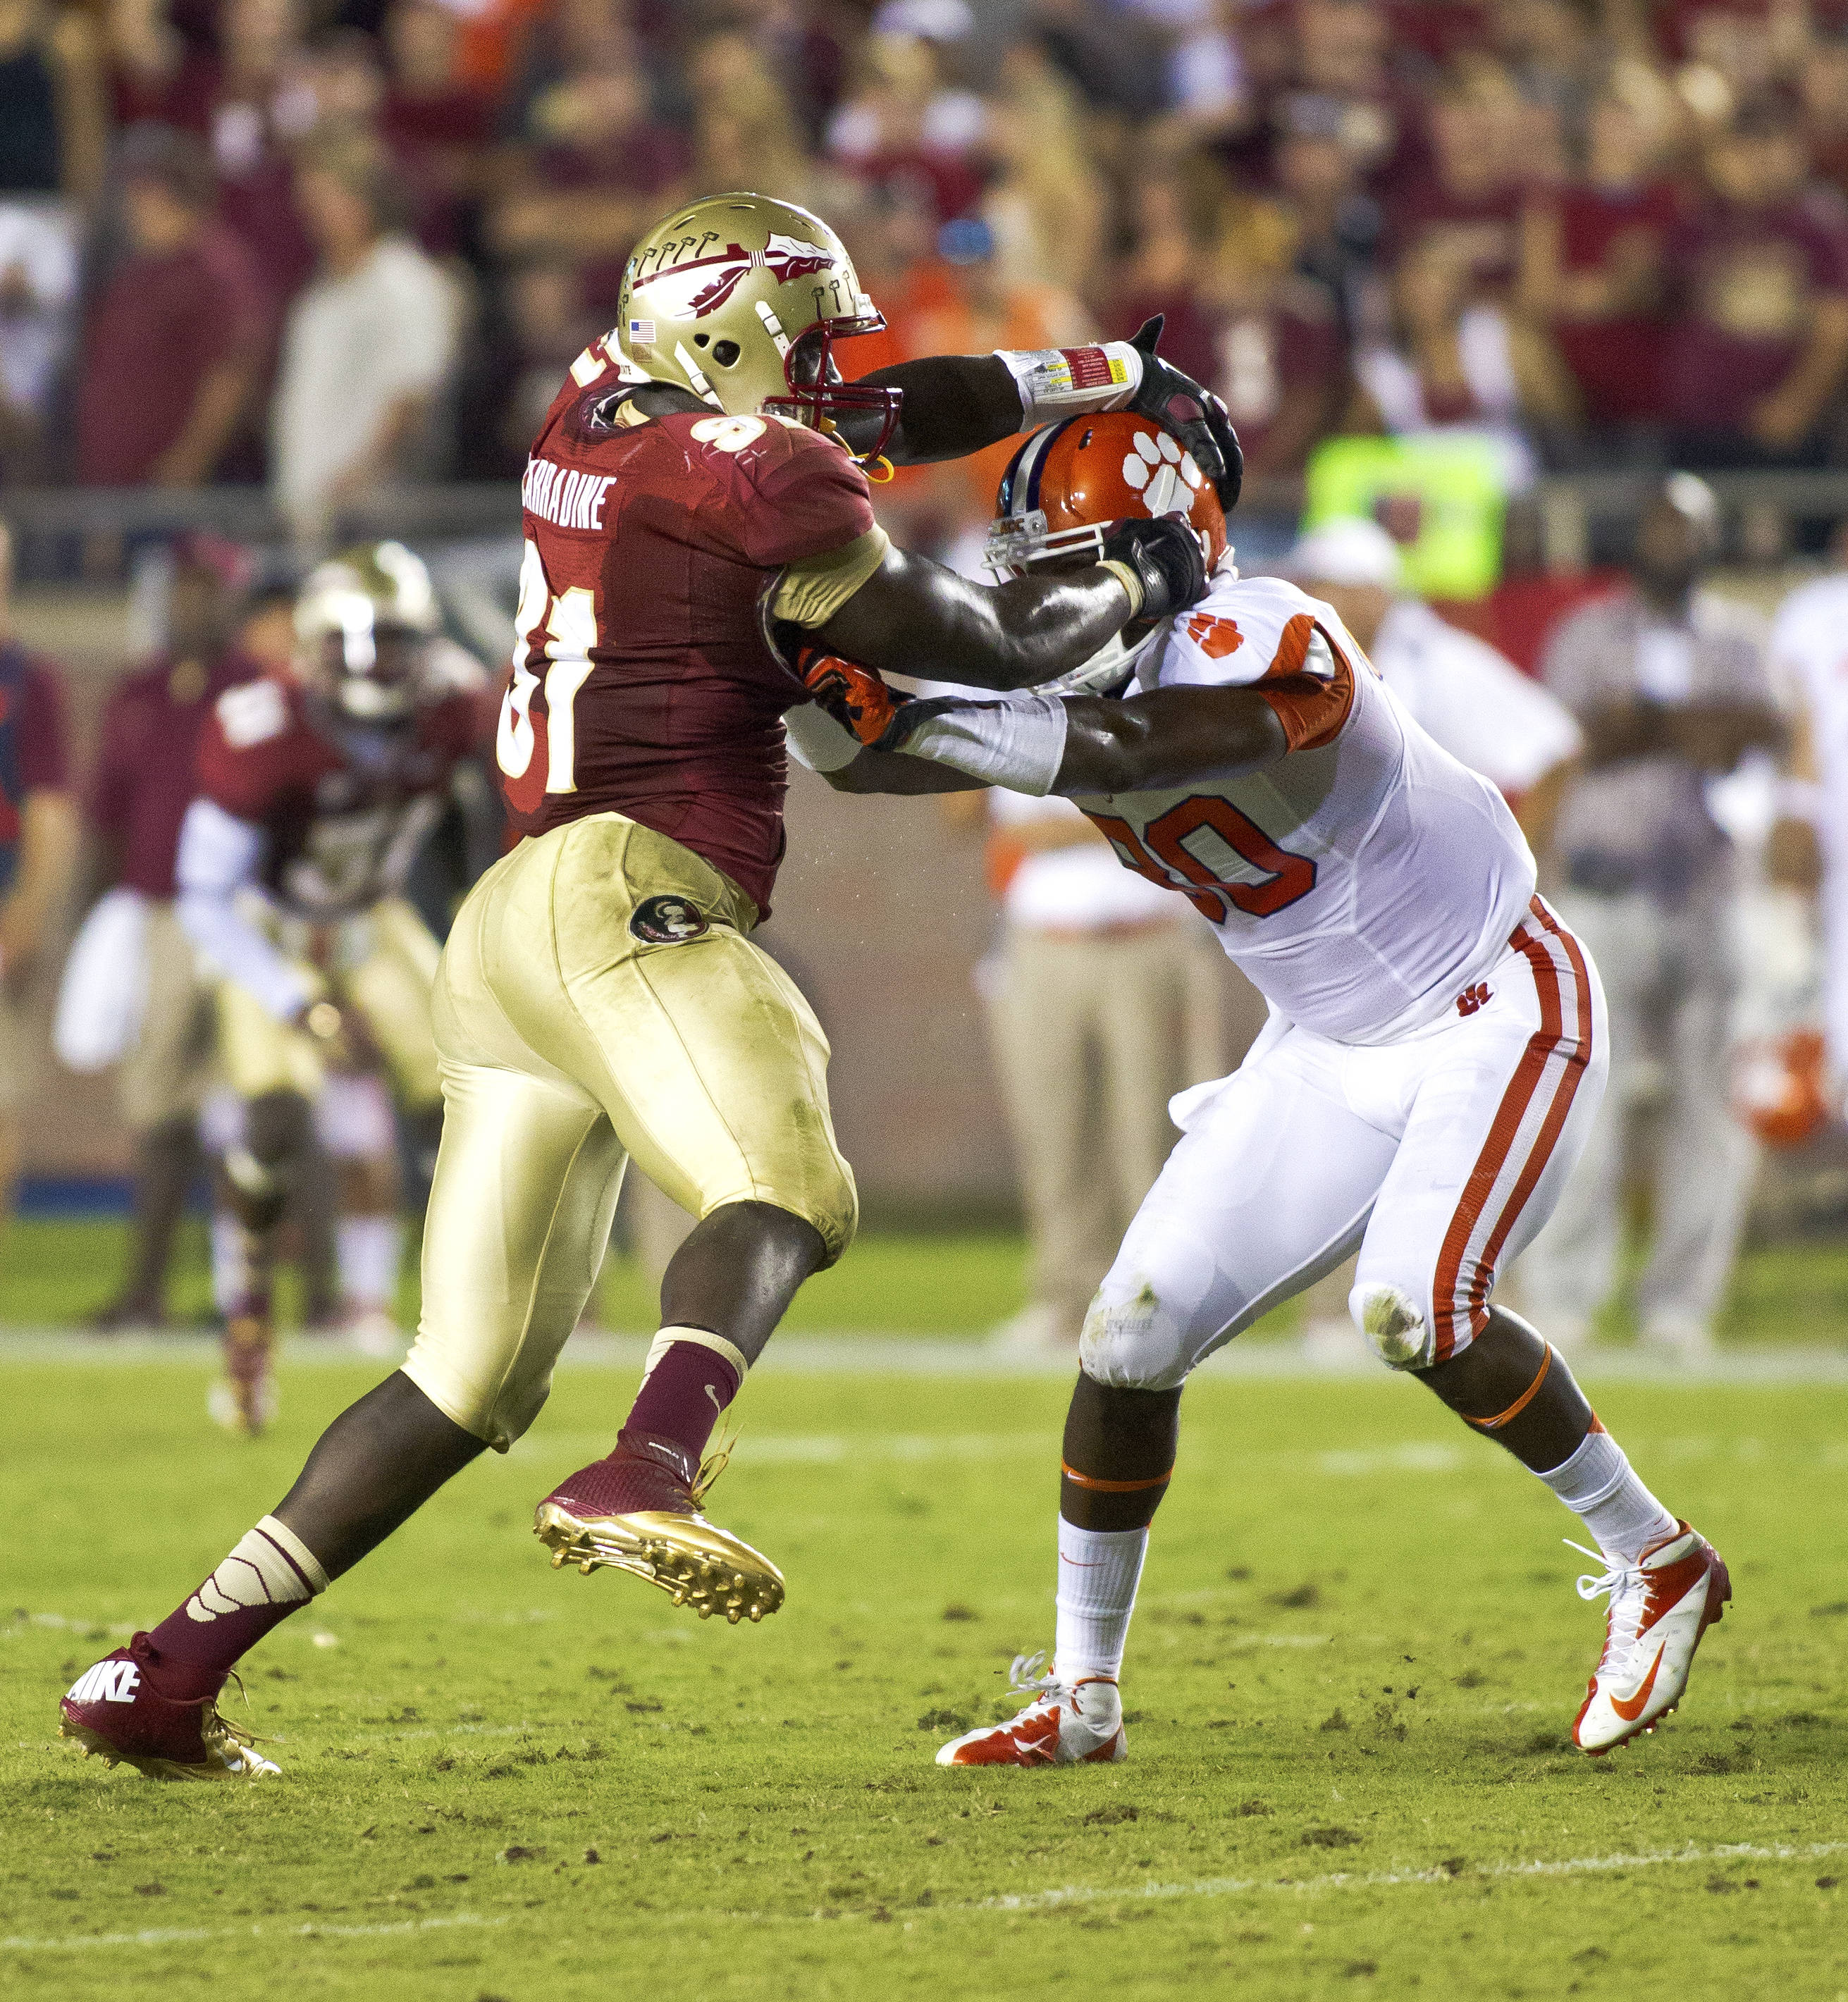 Cornellius Carradine (91) handling an offensive lineman, FSU vs Clemson, 9/22/12 (Photo by Steve Musco)